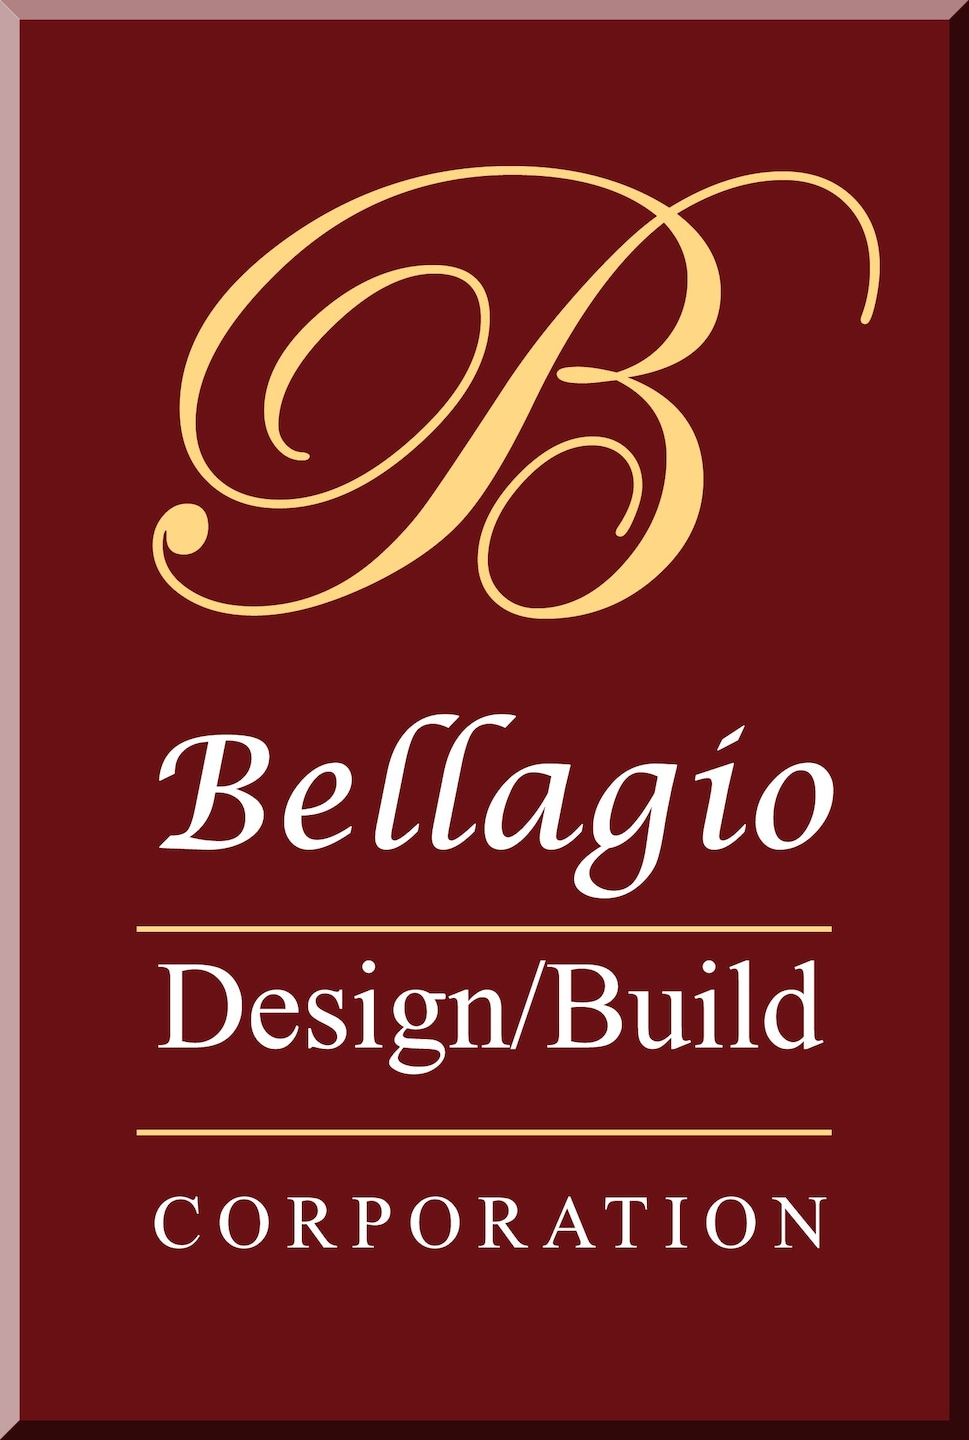 Bellagio Design Build Corp.